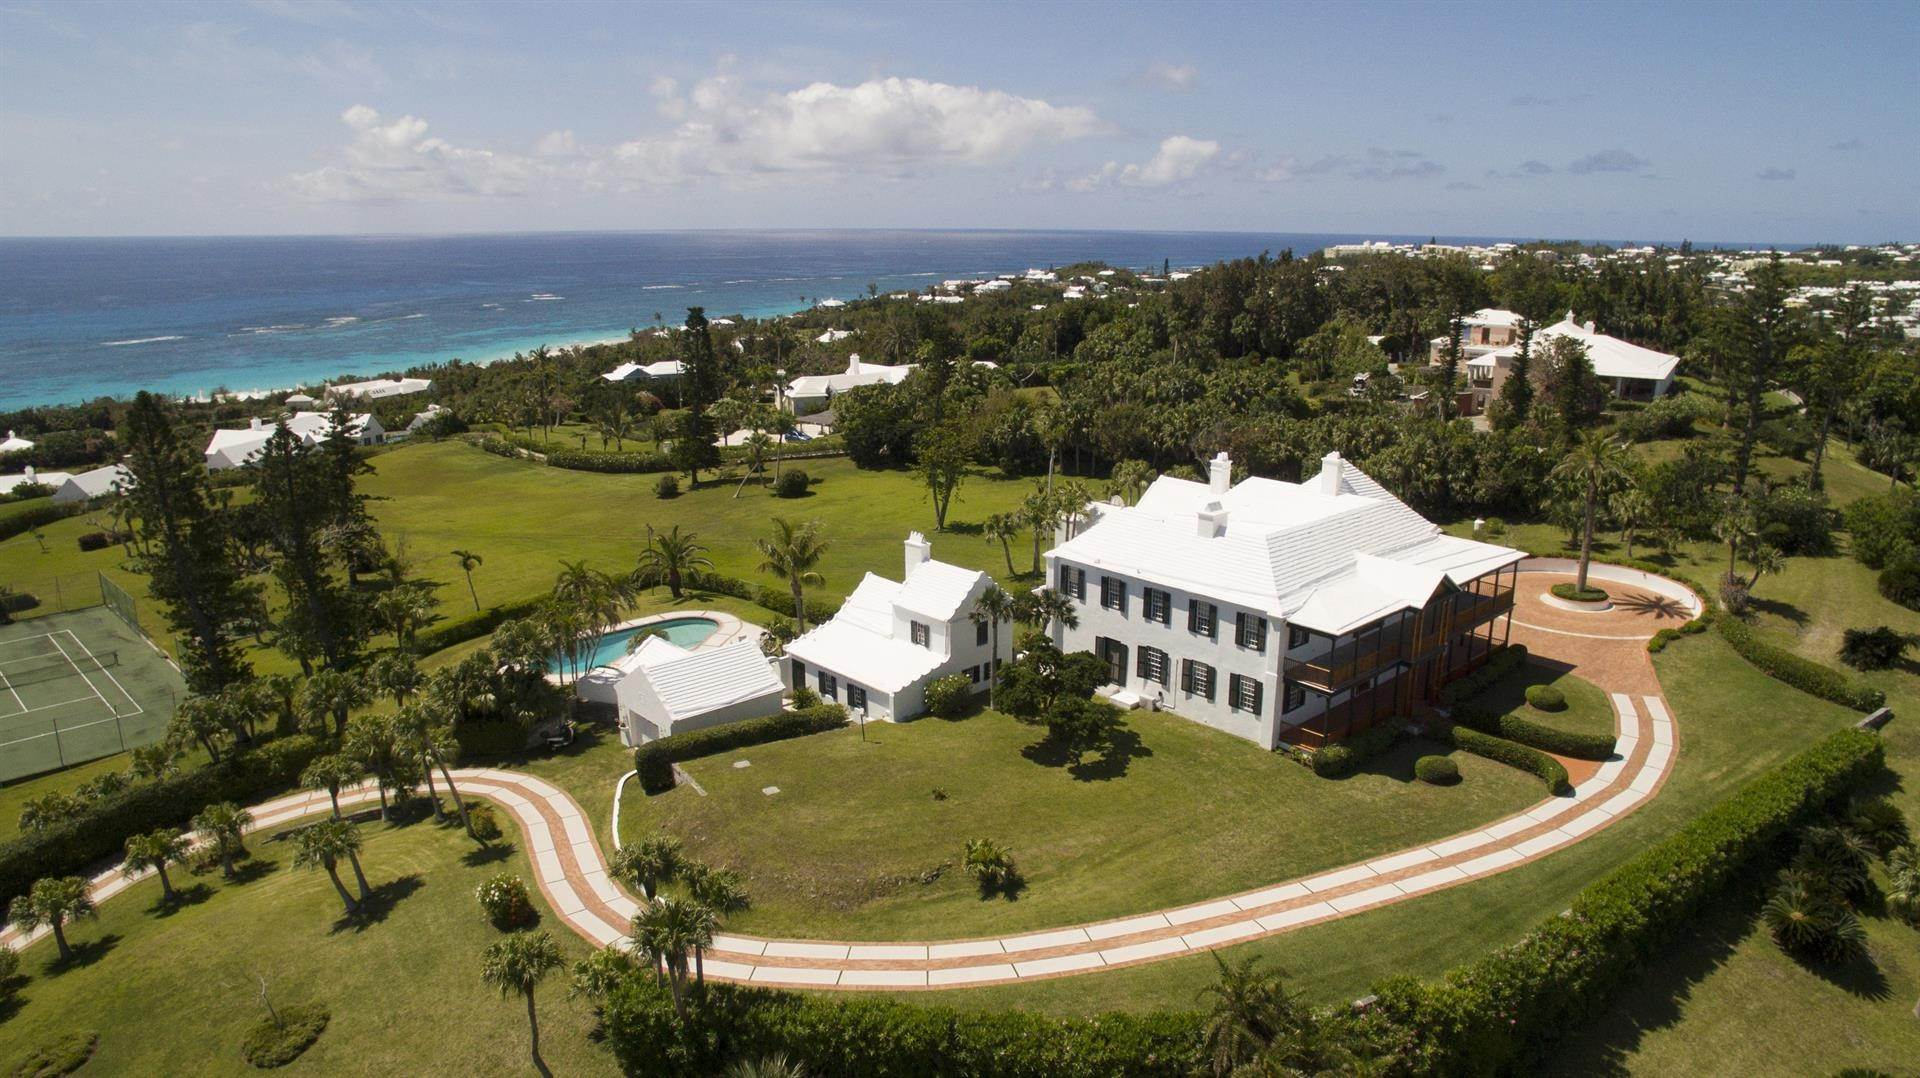 5. Propriedade para Venda às Bellevue Estate At Grape Bay Beach Bellevue Estate At Grape Bay Beach, 6 Bellevue Drive,Bermuda – Sinclair Realty